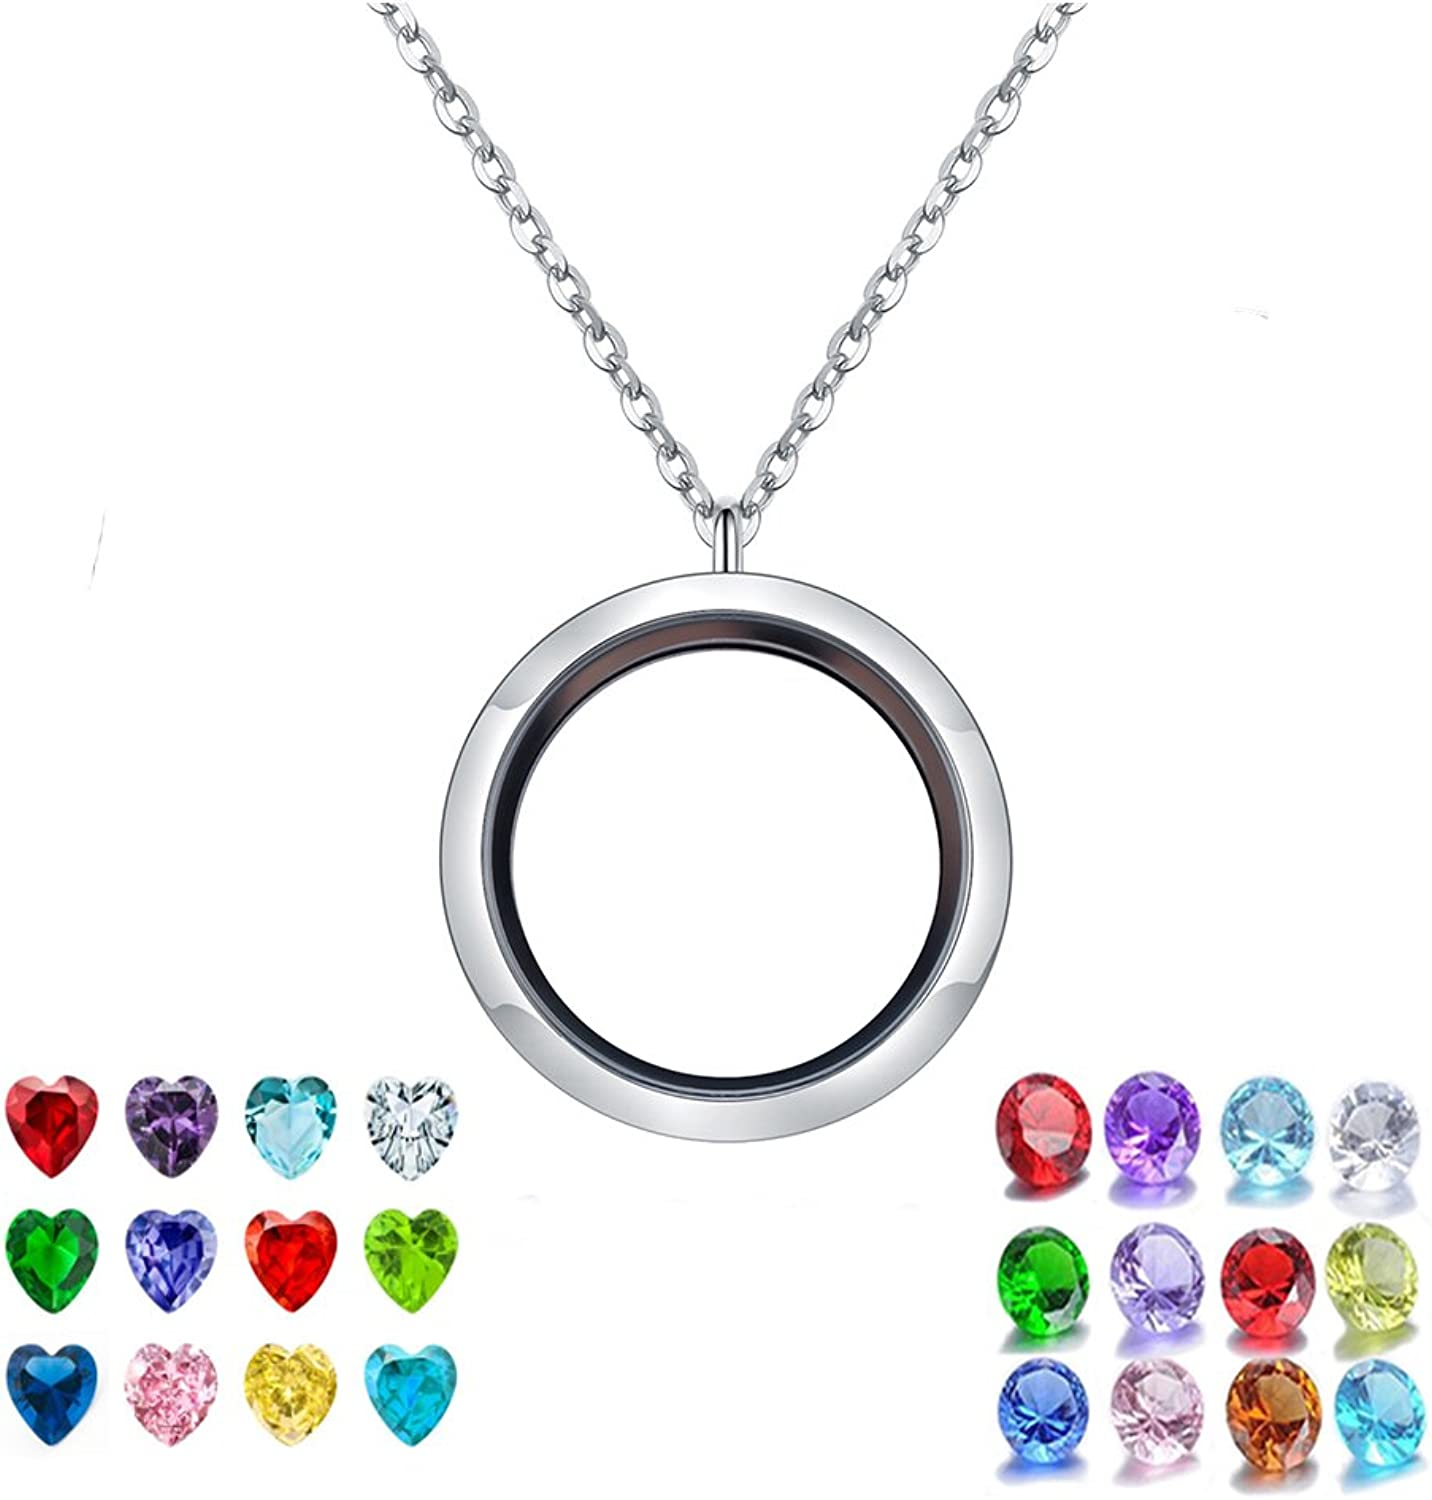 PORPI-JOJO Floating Lockets Necklaces Living Memory Locket 30mm Stainless Steel Heart&Round 24 CZ Birthstone